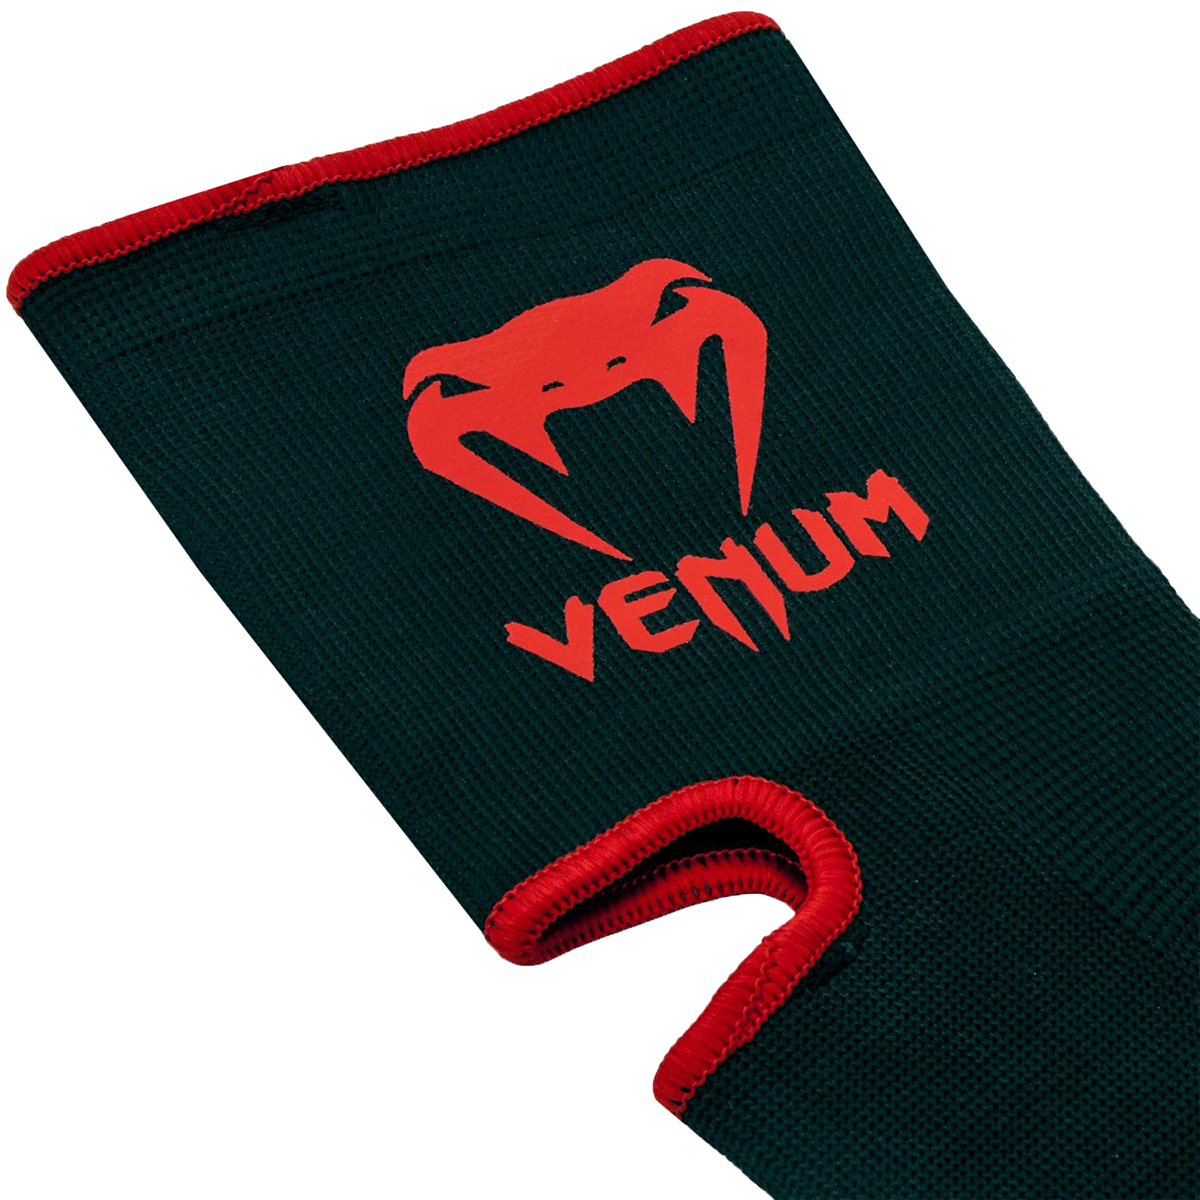 thumbnail 12 - Venum Kontact Slip-On MMA Pro Ankle Support Guards